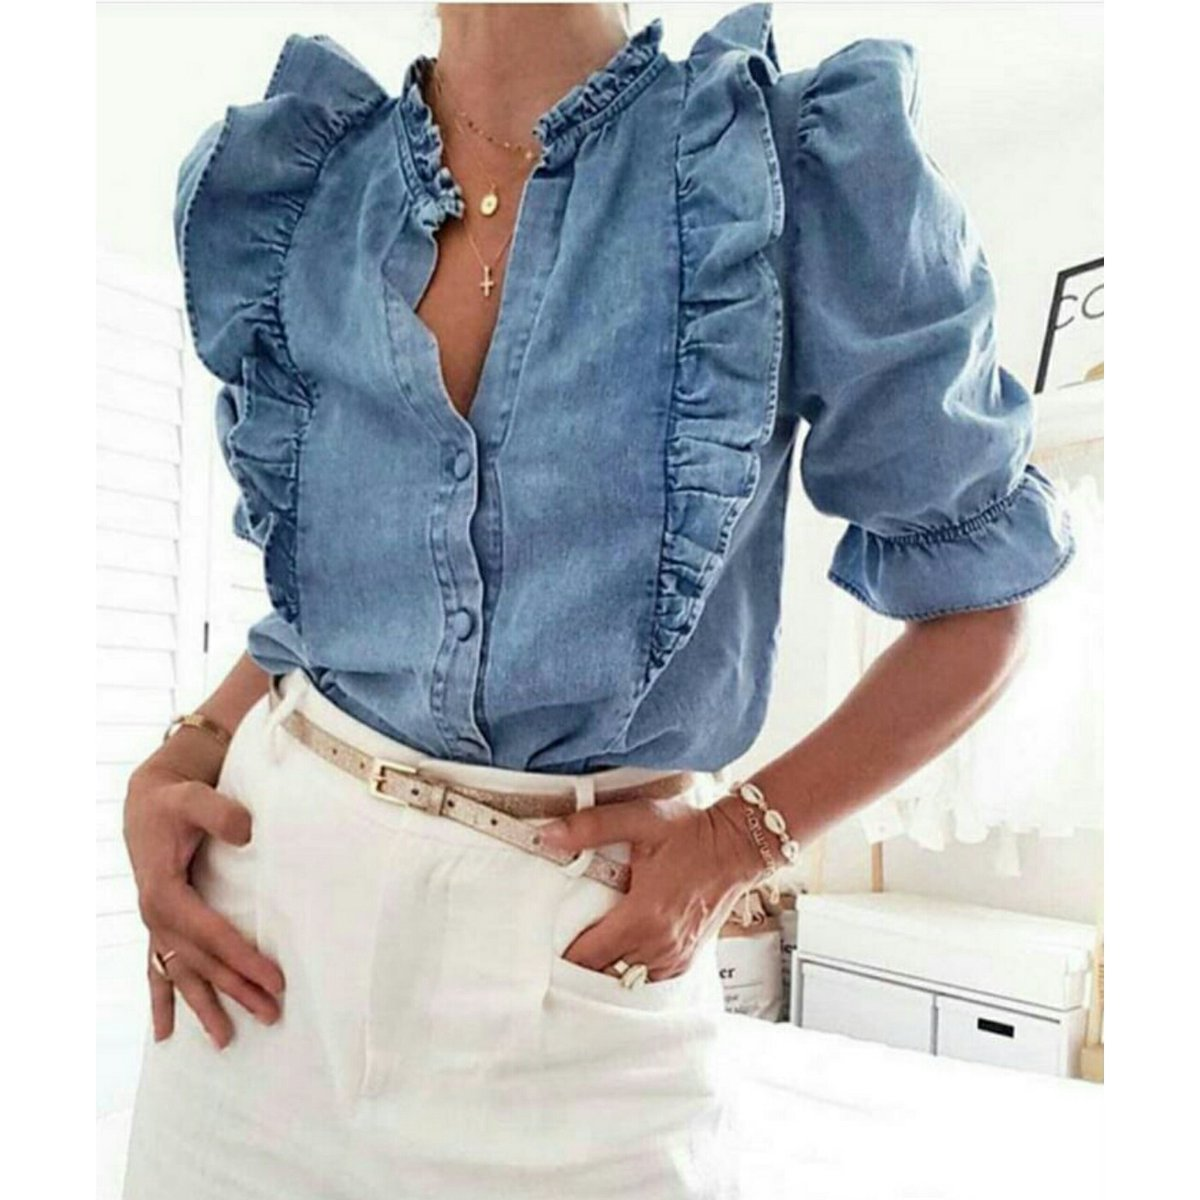 Now taking orders for this denim shirt available in sizes 36-42  Price: N8,490  #spotng #shopping #fashion #style #fashionable  #fashiondaily #fashionable #fashionpost #stylish #onlineshopping #weloveshopping #fashionshop https://t.co/Q4fJrffa71